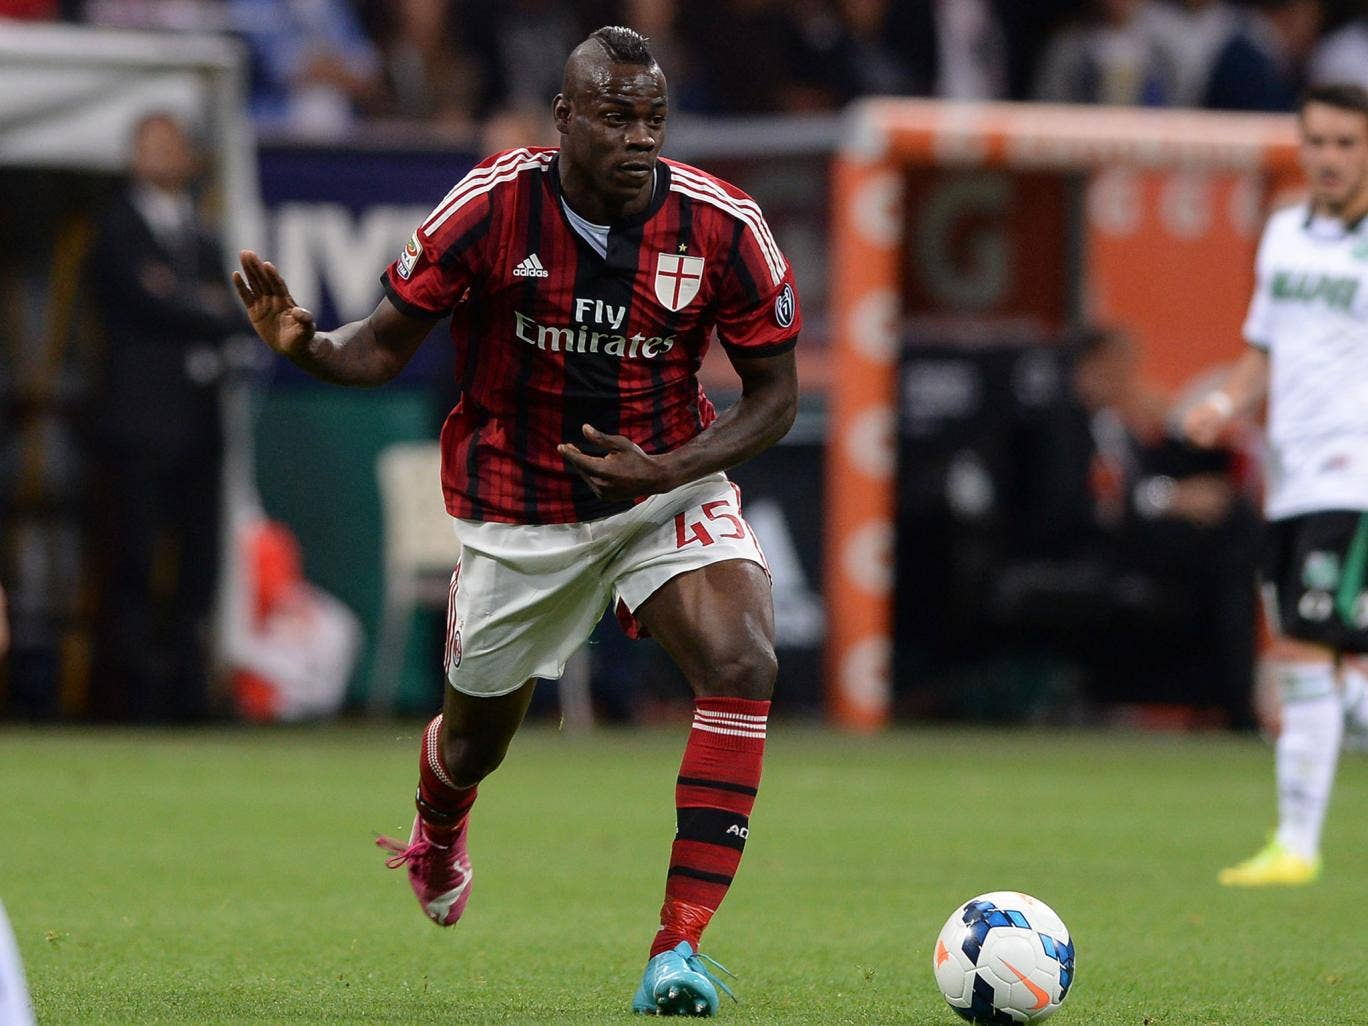 Mario Balotelli is being linked with a big-money move to Arsenal